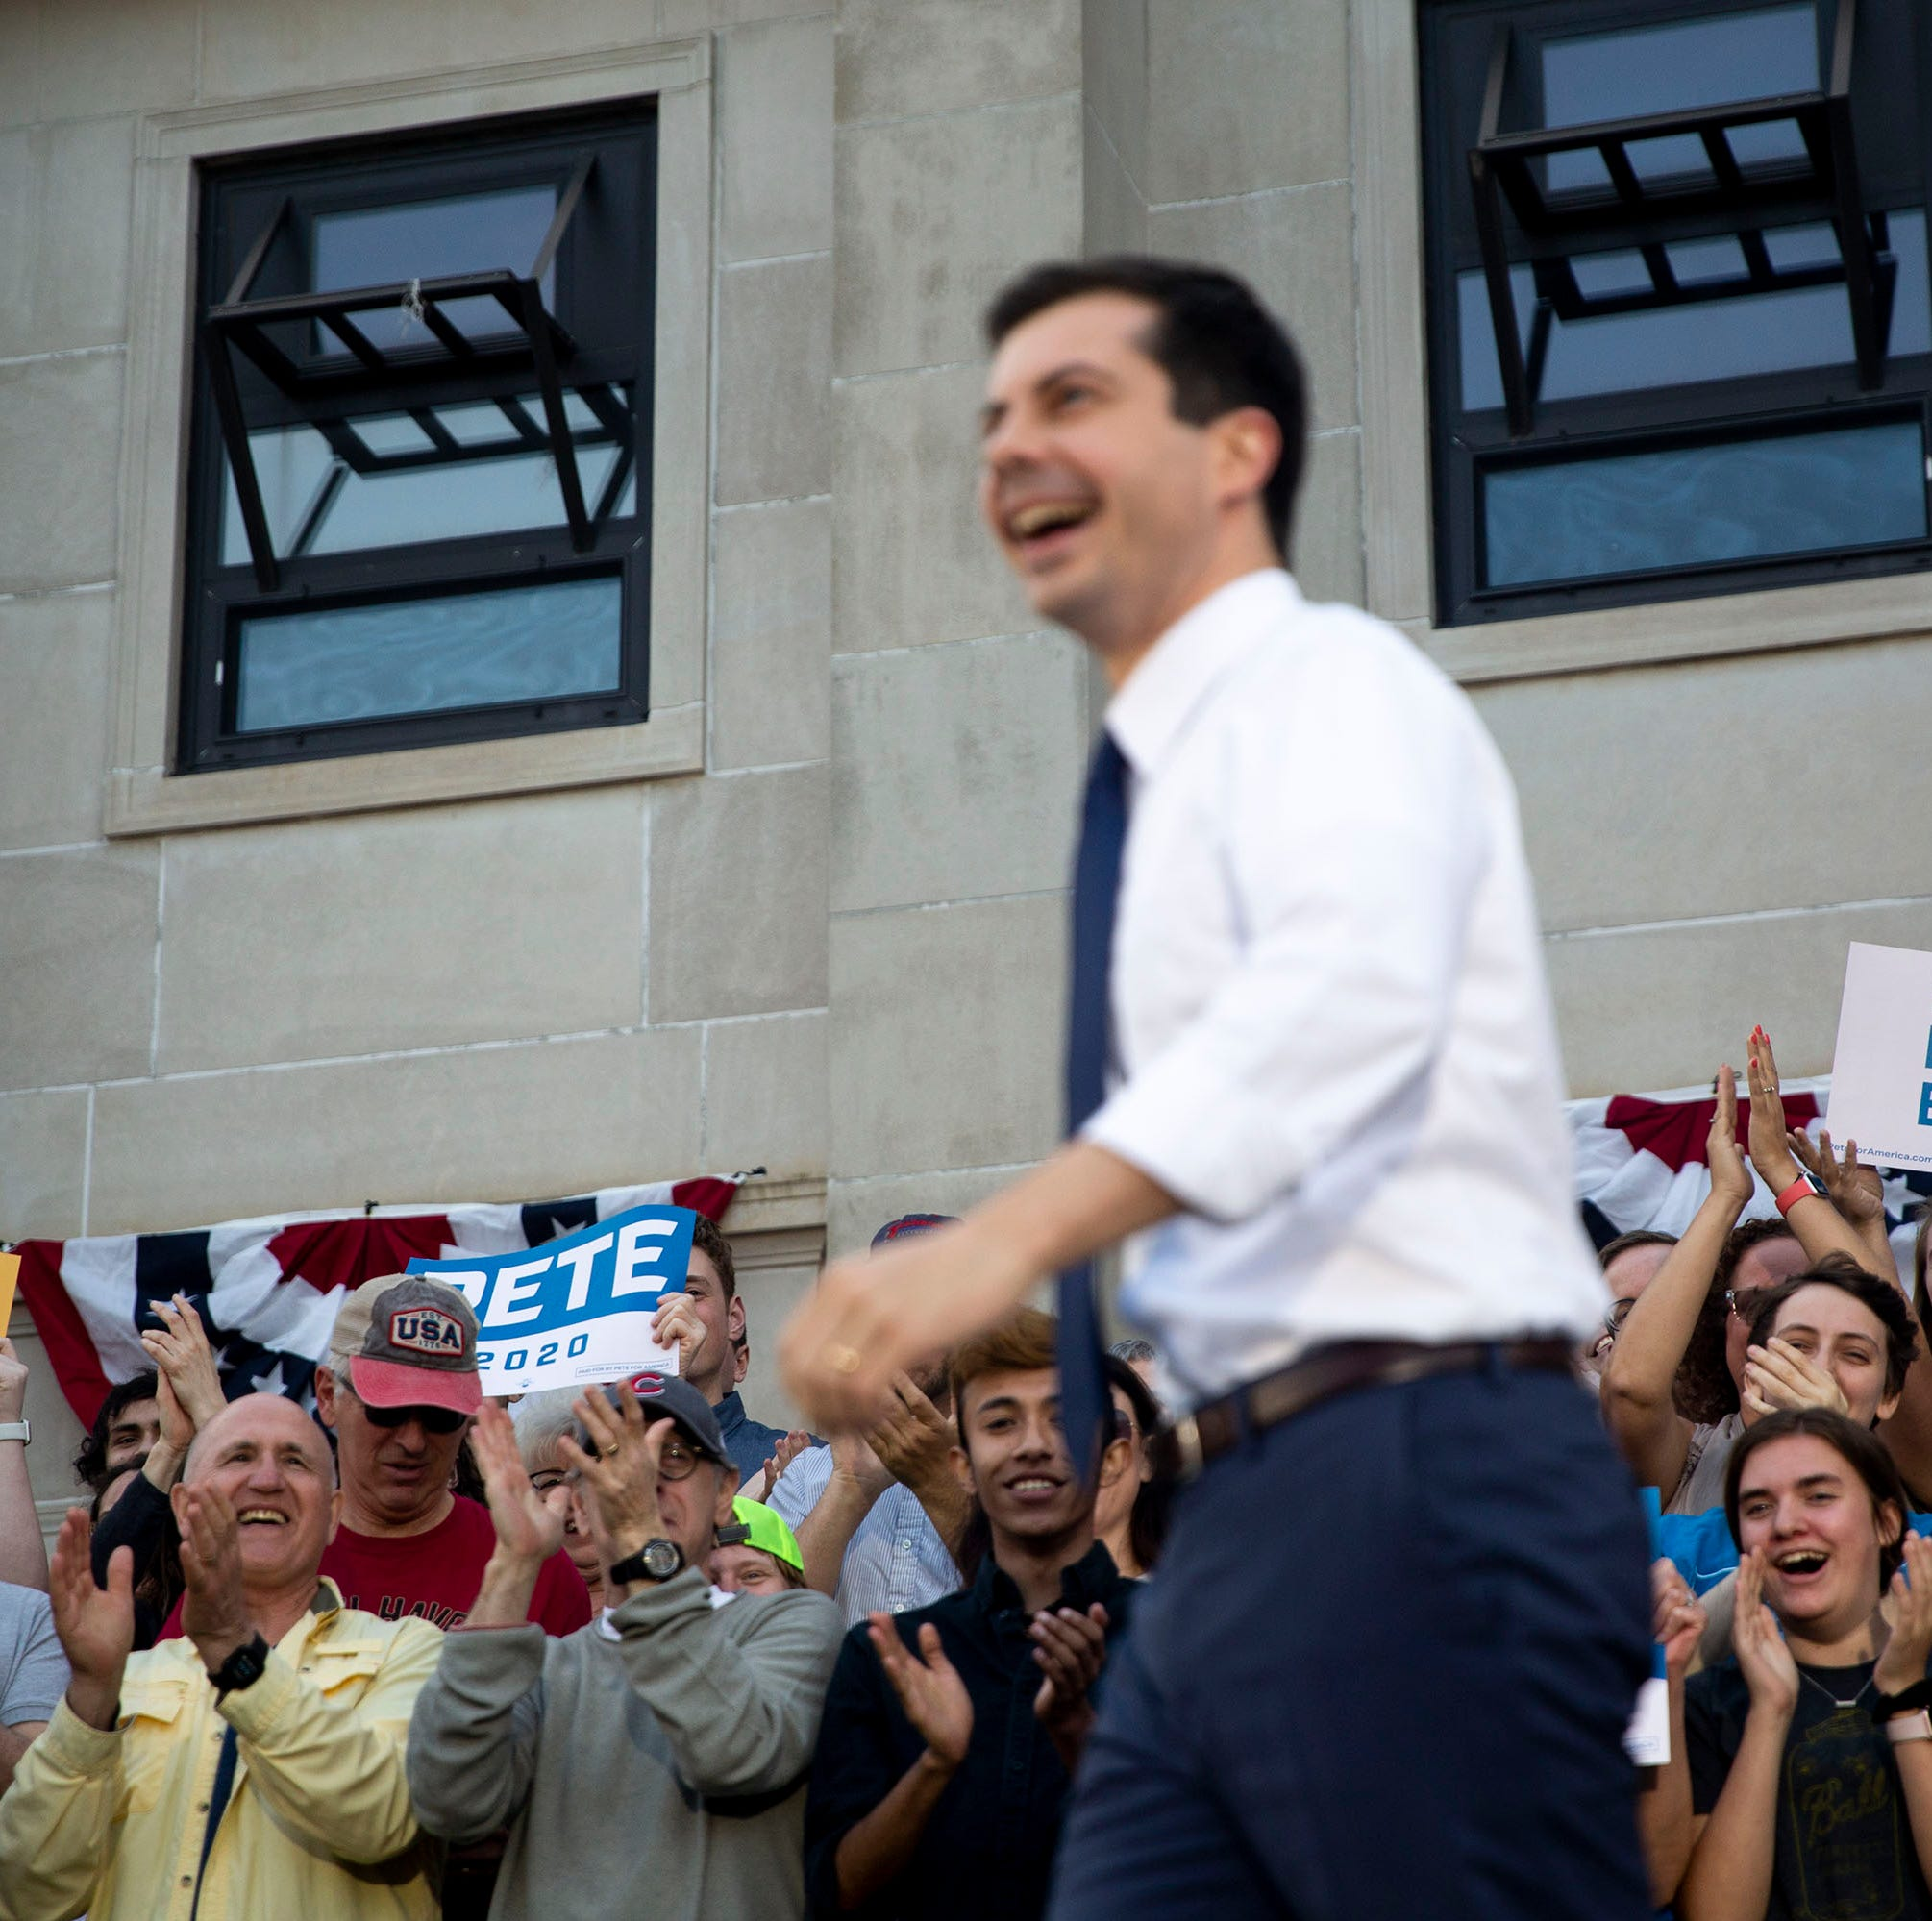 Anti-gay protesters shout about Sodom and Gomorrah at Pete Buttigieg rally in Des Moines